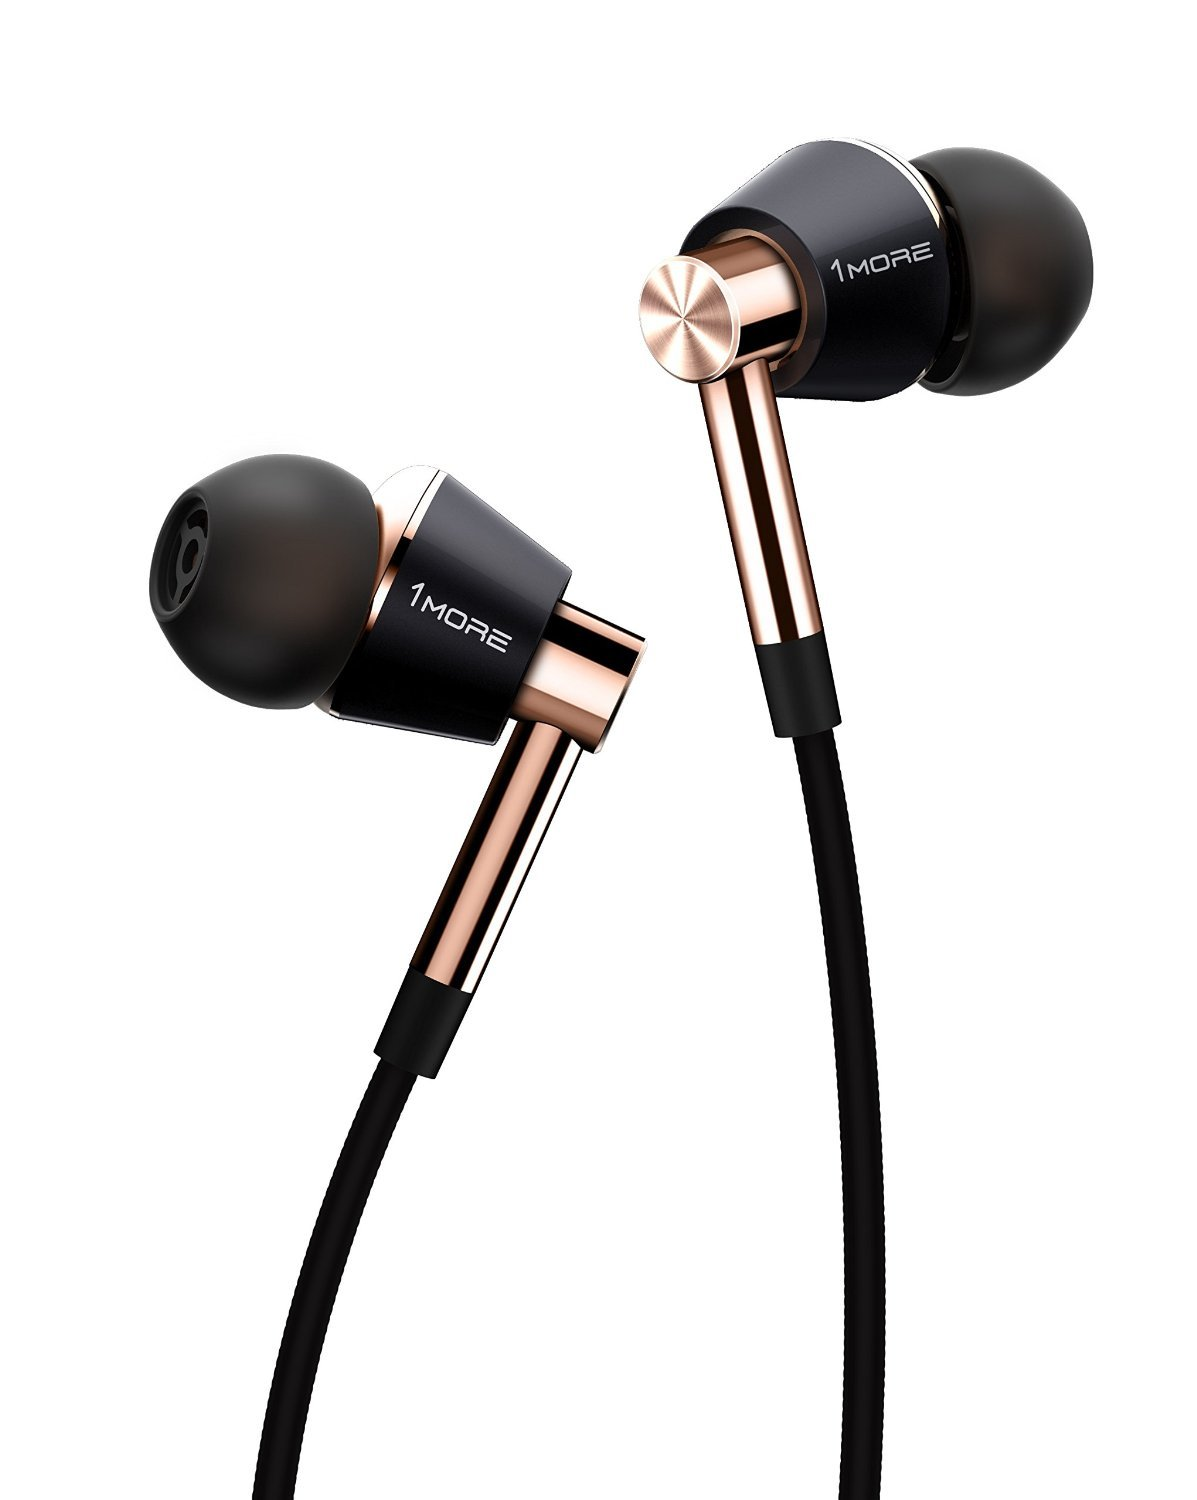 1MORE Triple Driver Lightning In-Ear Headphones (Earphones) In-built DAC, Apple MFi Certified ( All iPhone, iPad, iPod) with Microphone and Control Remote (Gold)